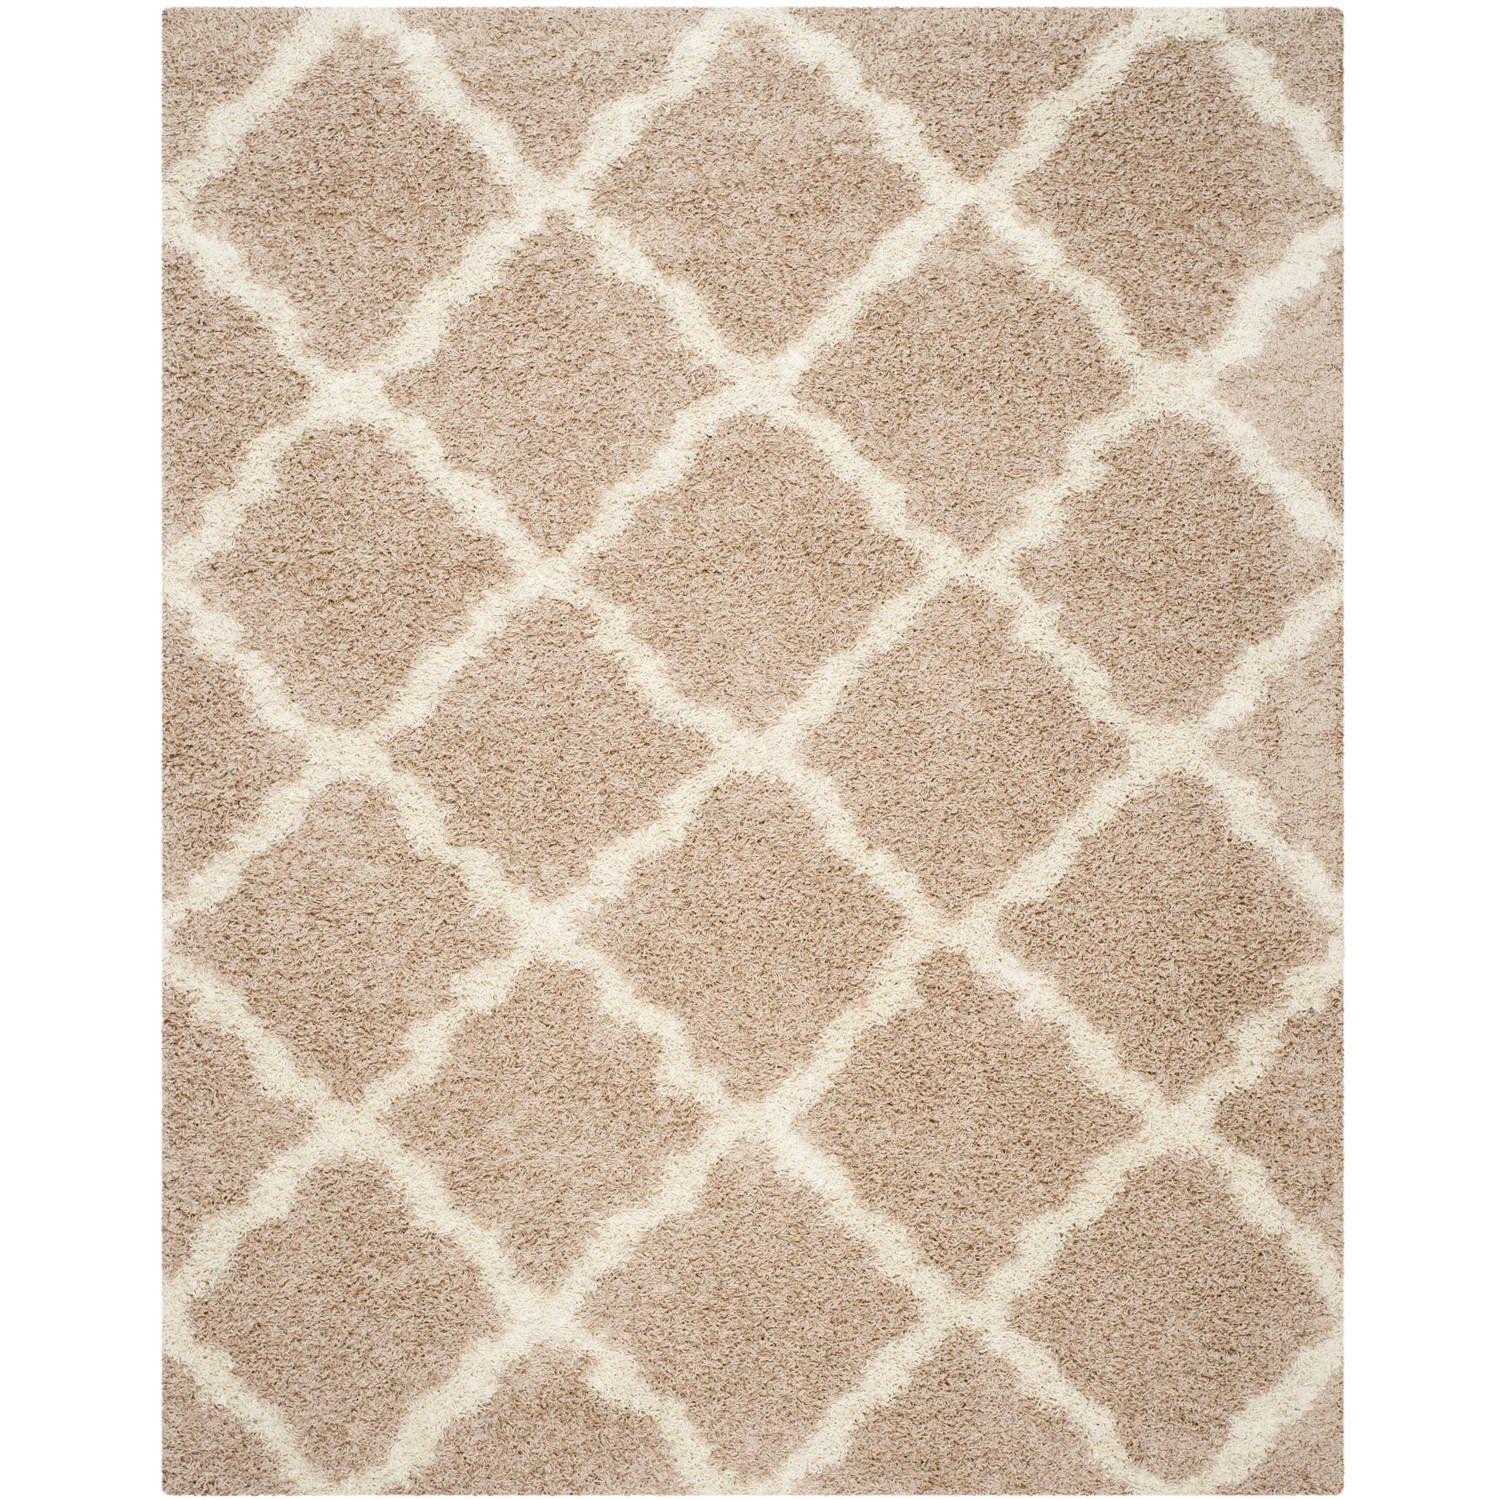 Shaggy Area Rug Home Decor